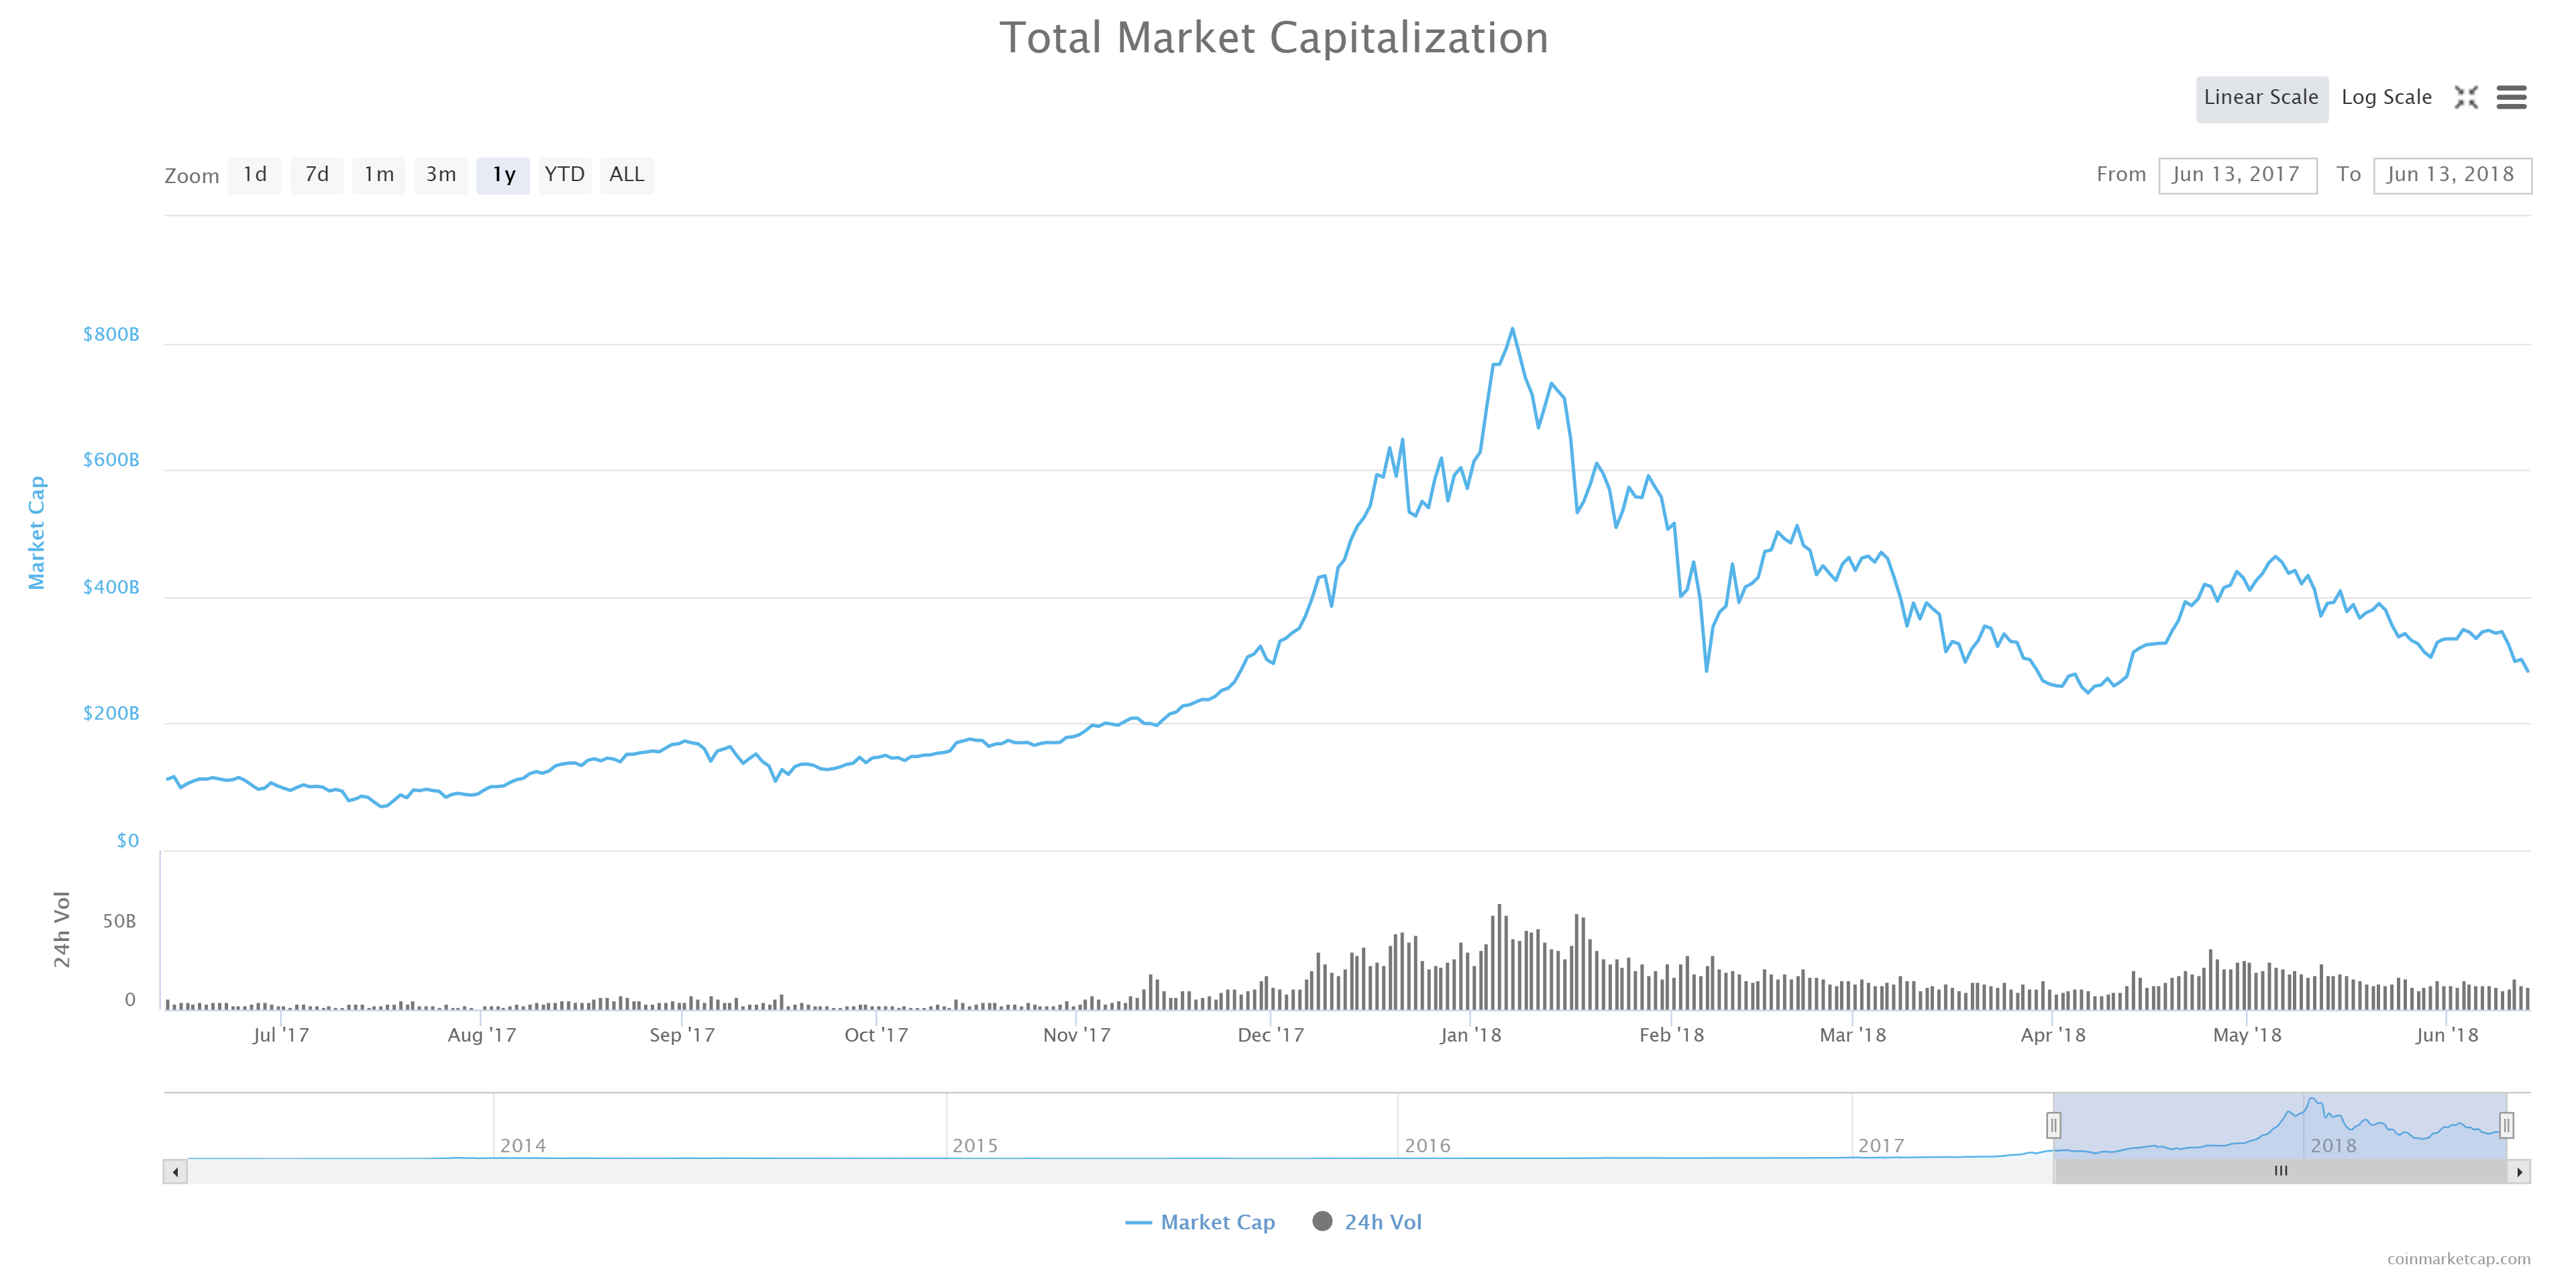 Altcoins Get Clobbered, Taking the Brunt of the Bitcoin Bear Market